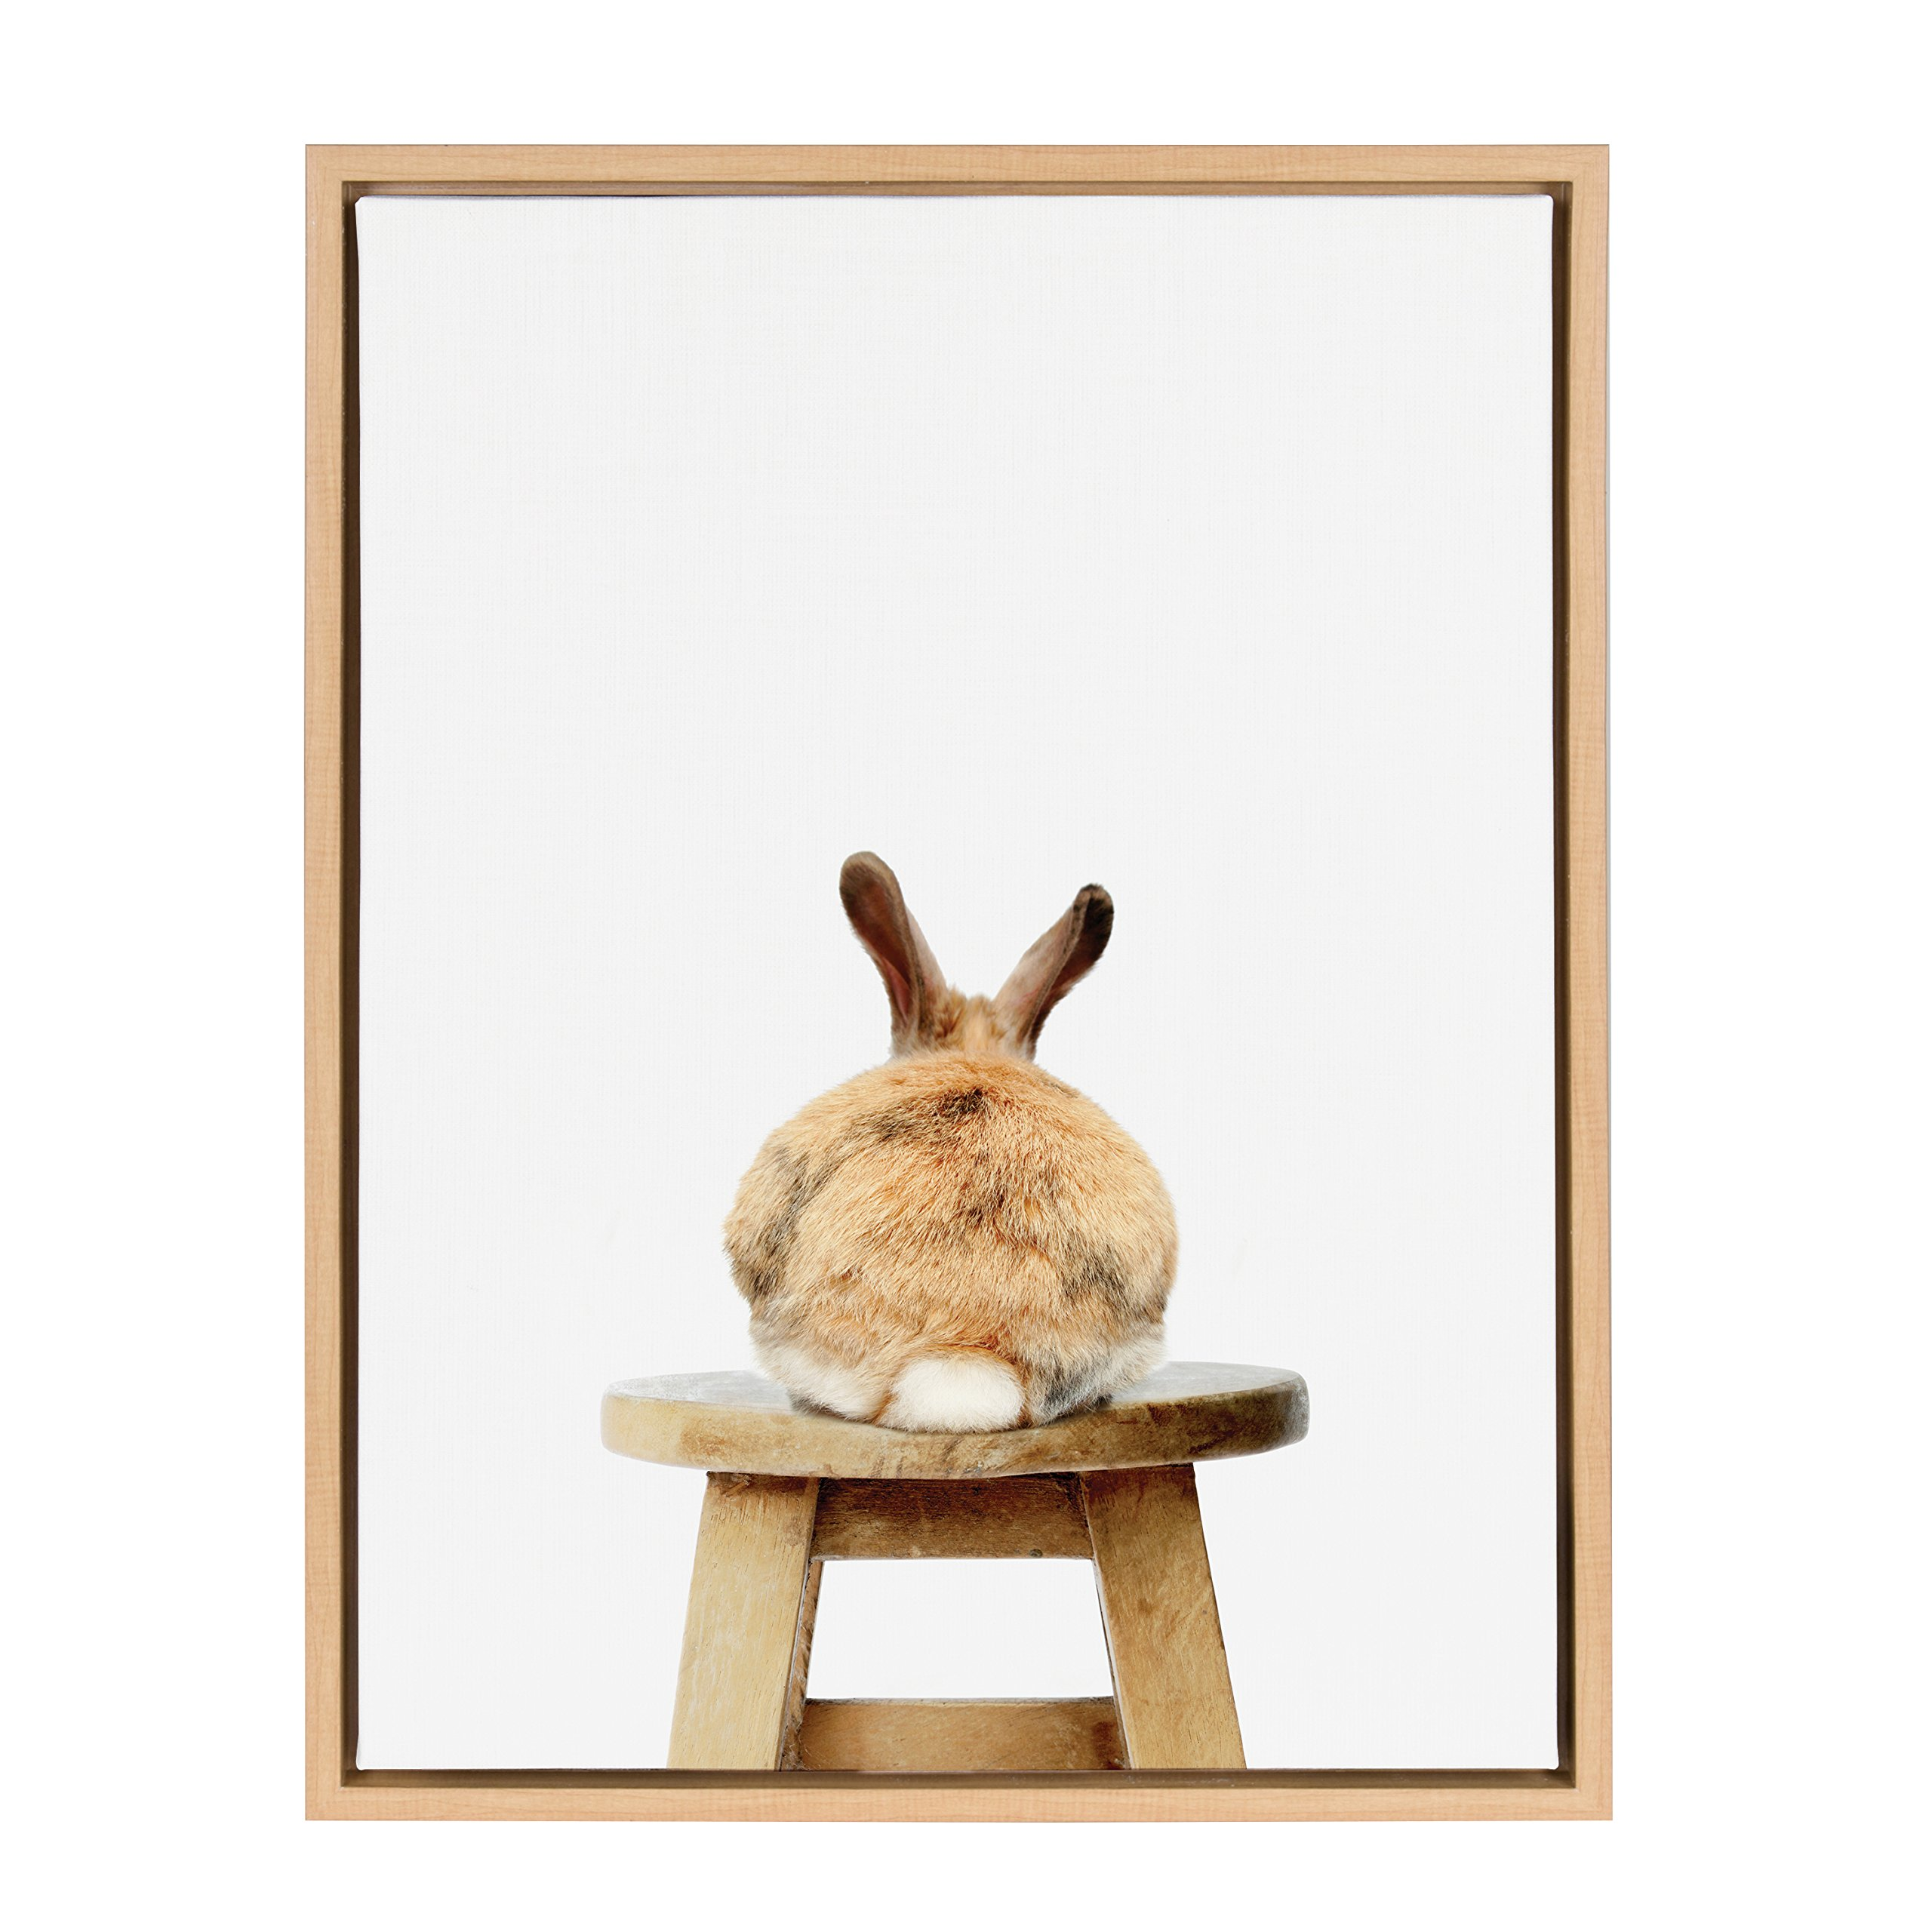 Kate and Laurel - Sylvie Bunny Rabbit Back Animal Print Portrait Framed Canvas Wall Art by Amy Peterson, Natural 18 x 24 by Kate and Laurel